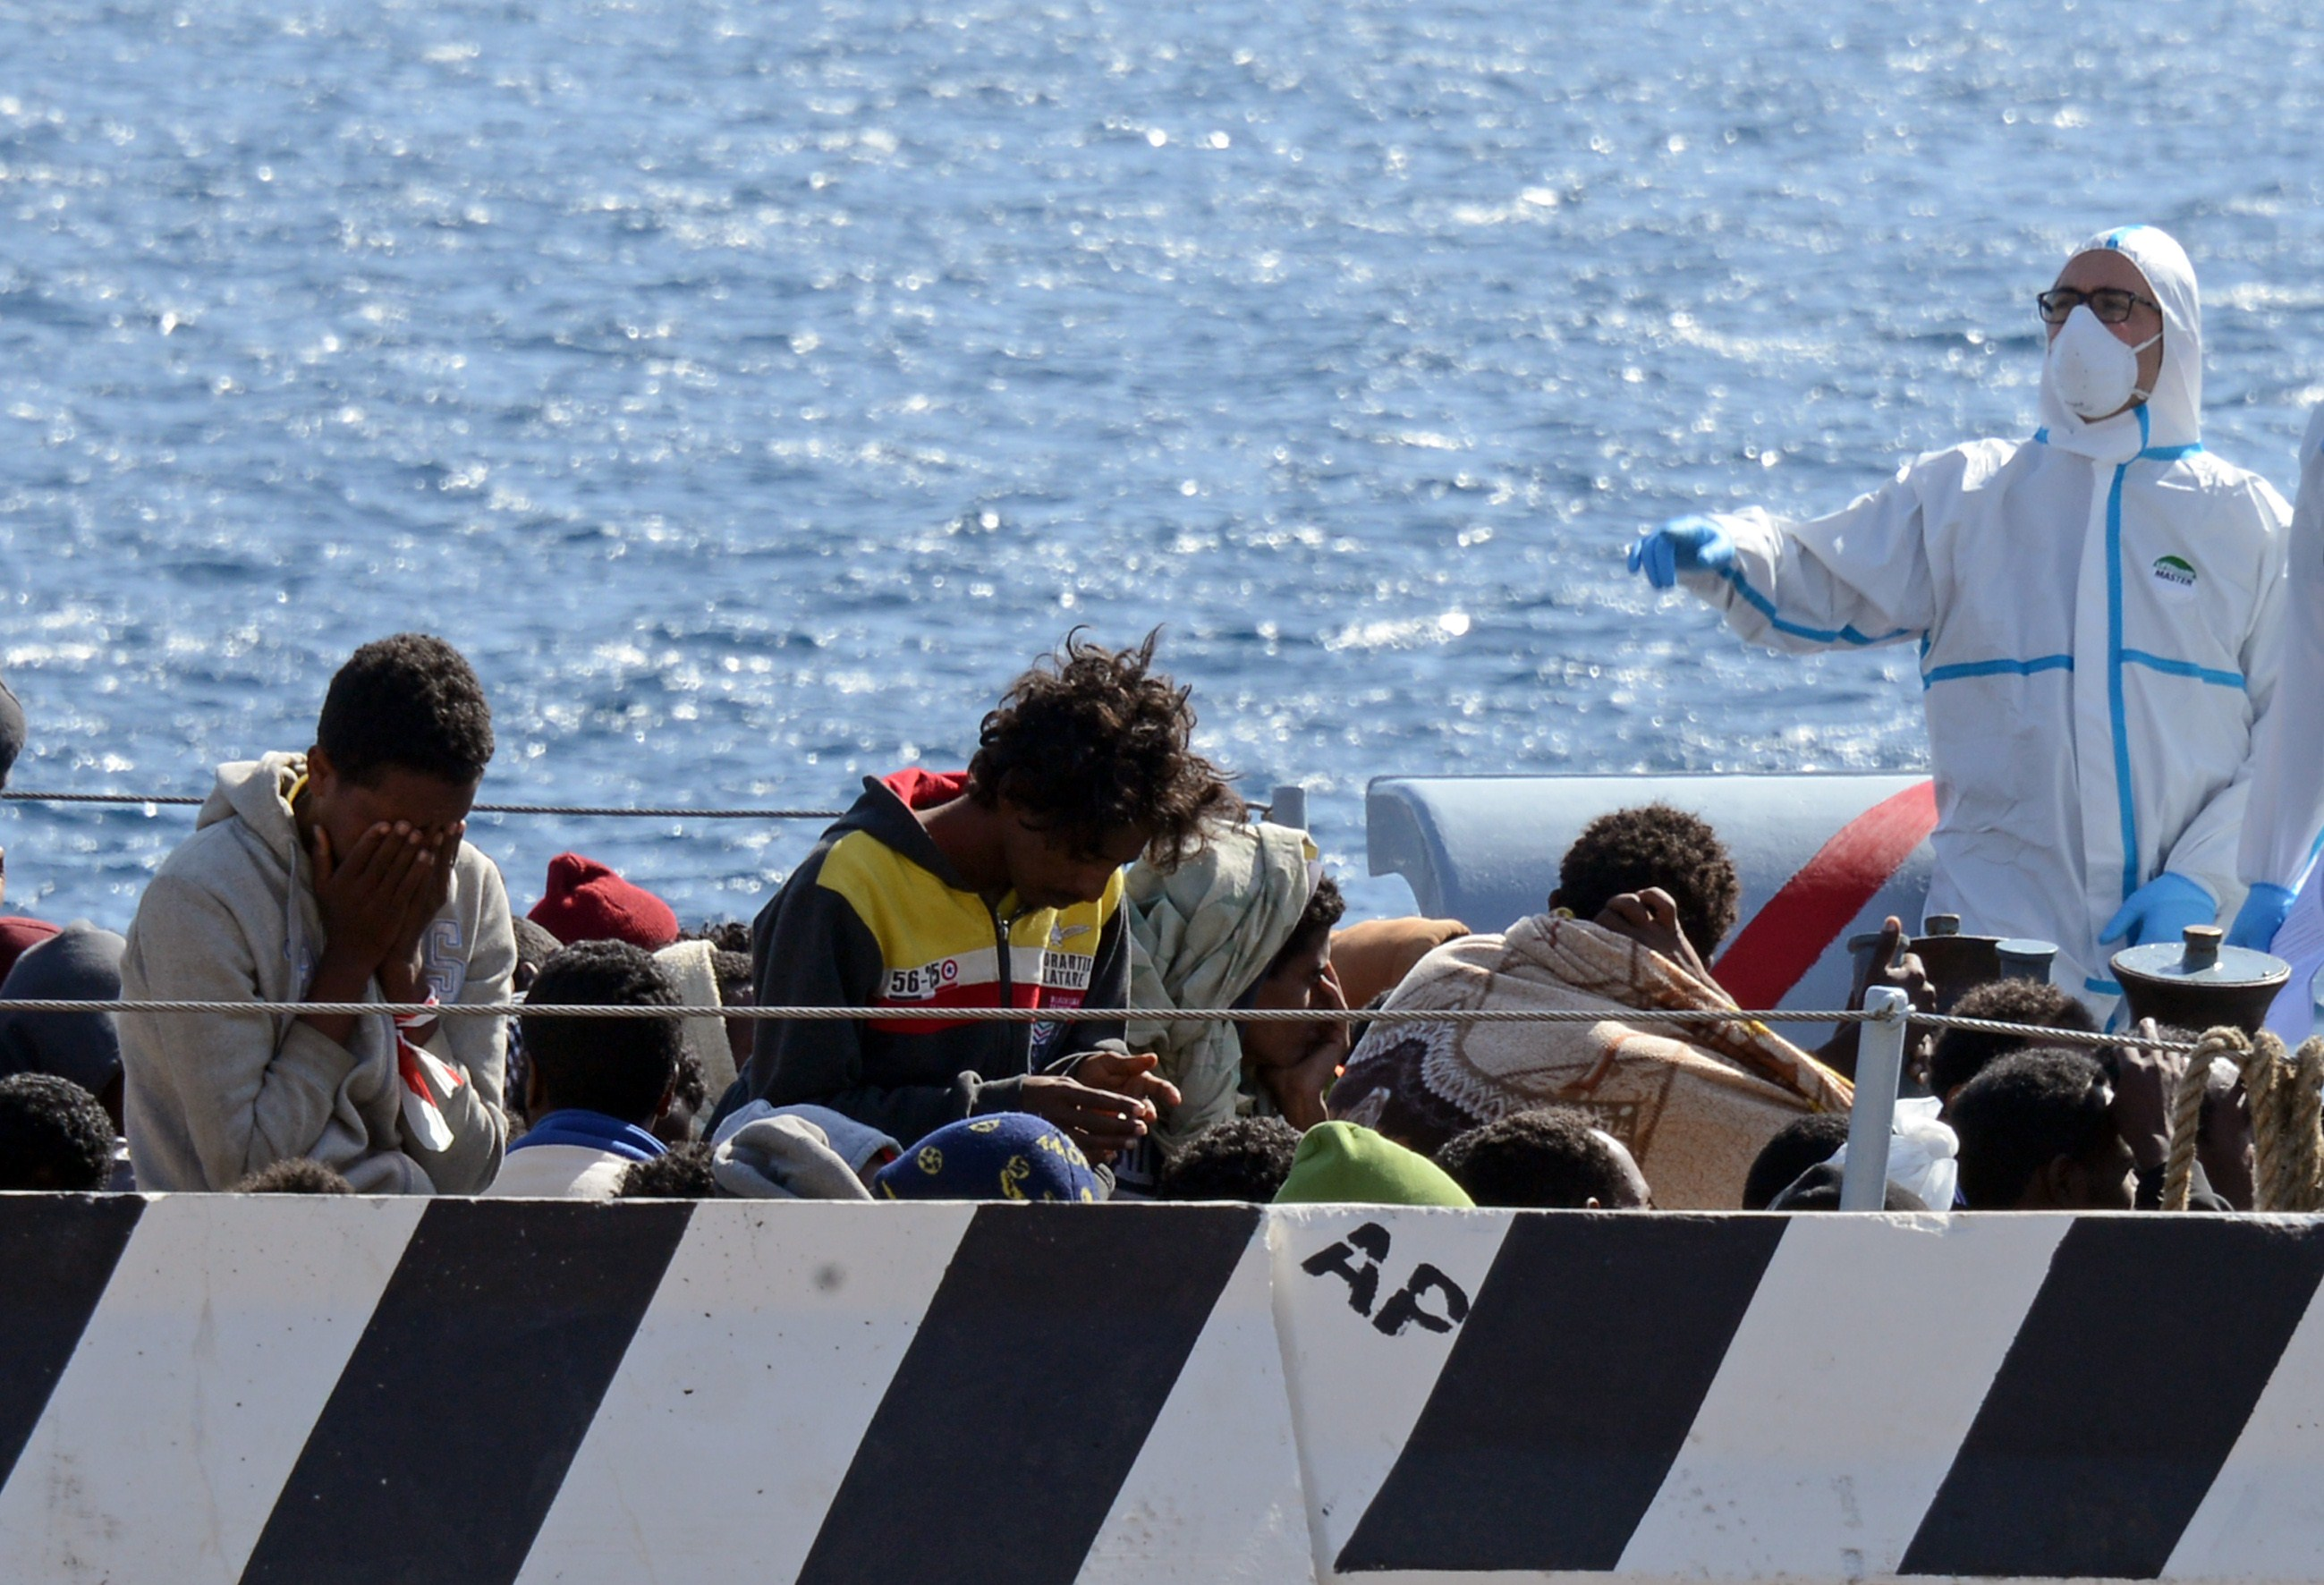 Migrants arrive in the port of Messina after a rescue operation at see on April 18, 2015 in Sicily. A surge of migrants pouring into Europe from across the Mediterranean won't end before chaos in Libya is controlled, Italy's prime minister said yesterday, as the Vatican condemned a deadly clash between Muslim and Christian refugees on one boat. Italian authorities have rescued more than 11,000 migrants making the often deadly voyage from North Africa in the past six days, with hundreds more expected, the coastguard said.  AFP PHOTO / GIOVANNI ISOLINO        (Photo credit should read GIOVANNI ISOLINO/AFP/Getty Images)